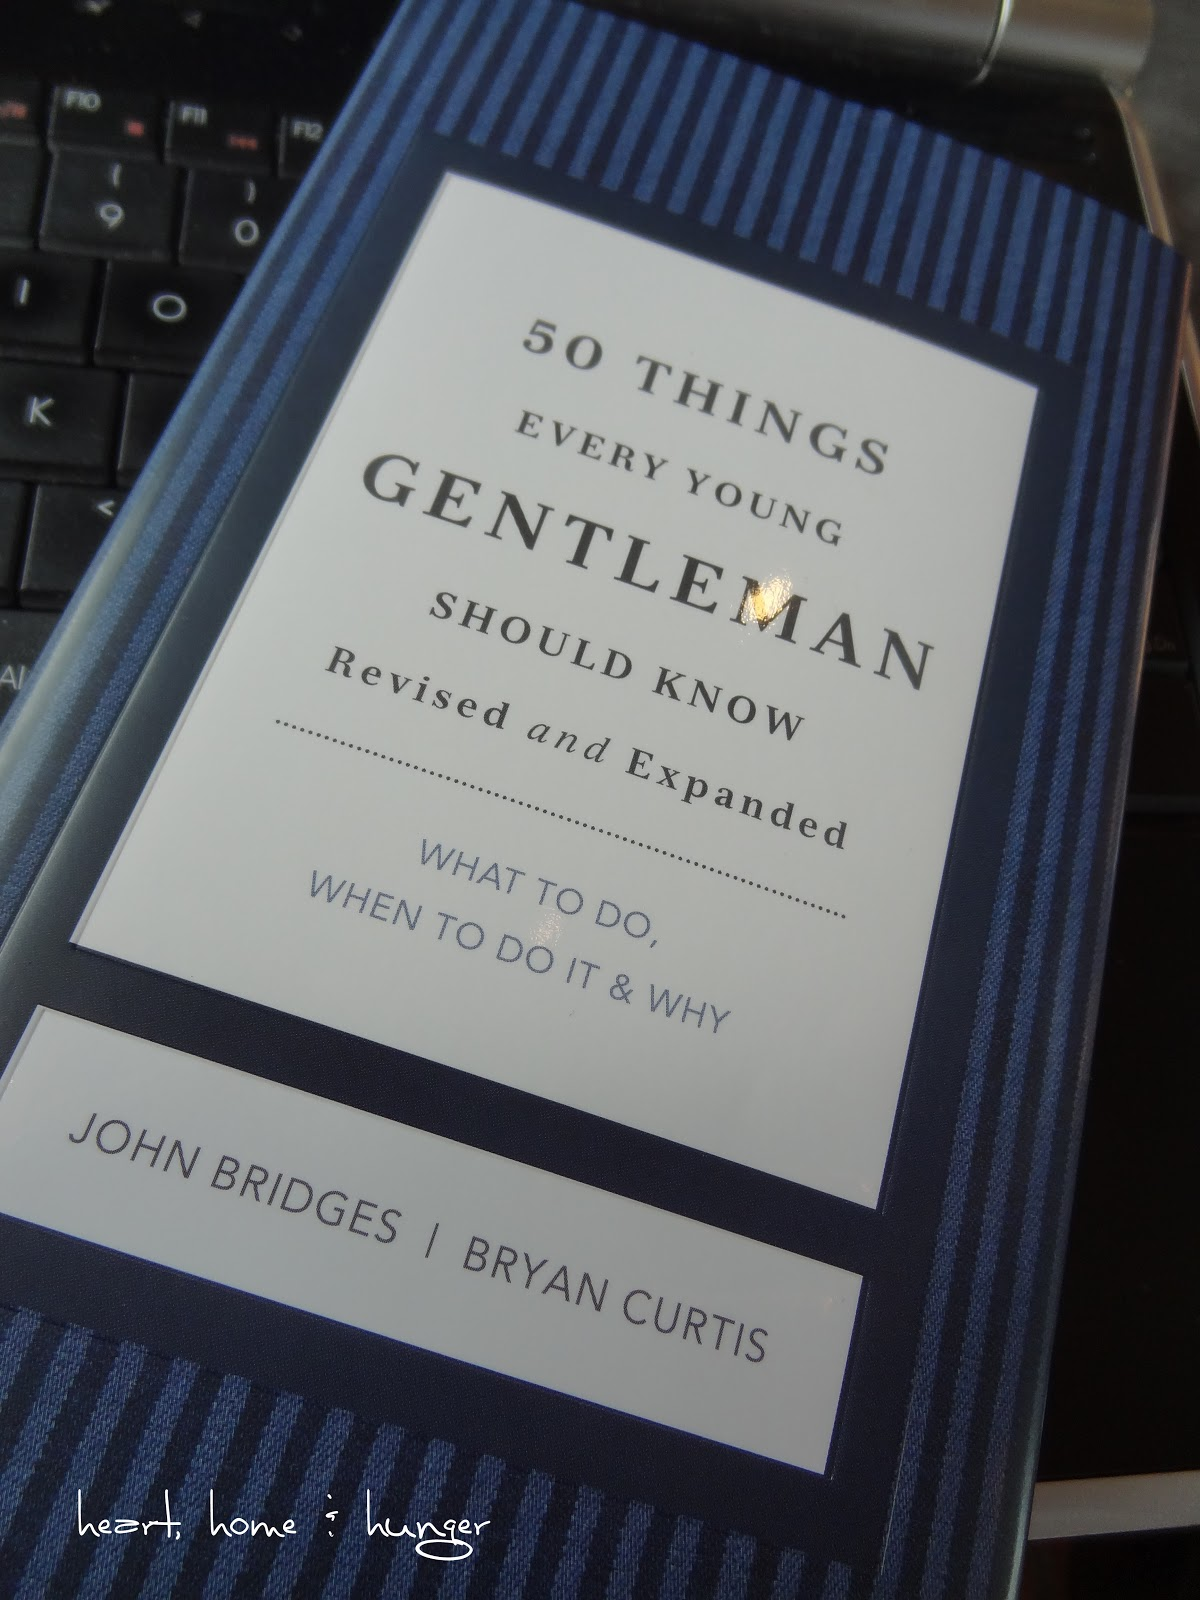 50 Things Every Young Gentleman Should Know - Bridges/Curtis